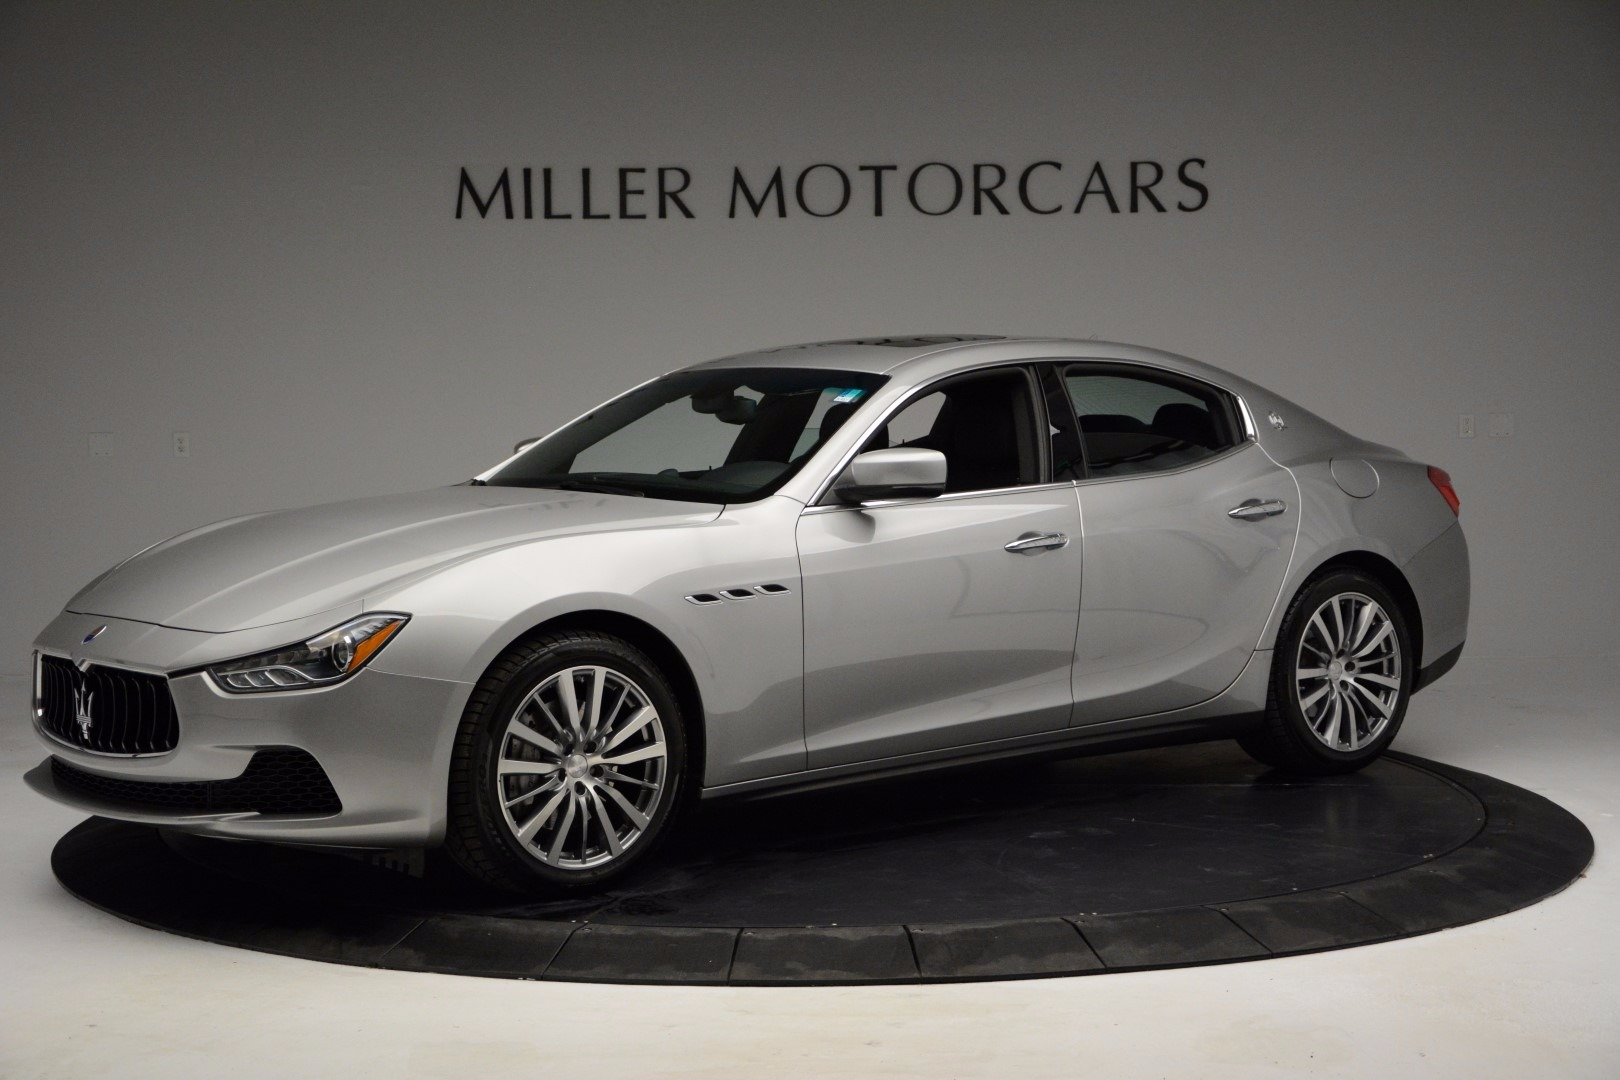 Used 2014 Maserati Ghibli for sale Sold at Aston Martin of Greenwich in Greenwich CT 06830 1